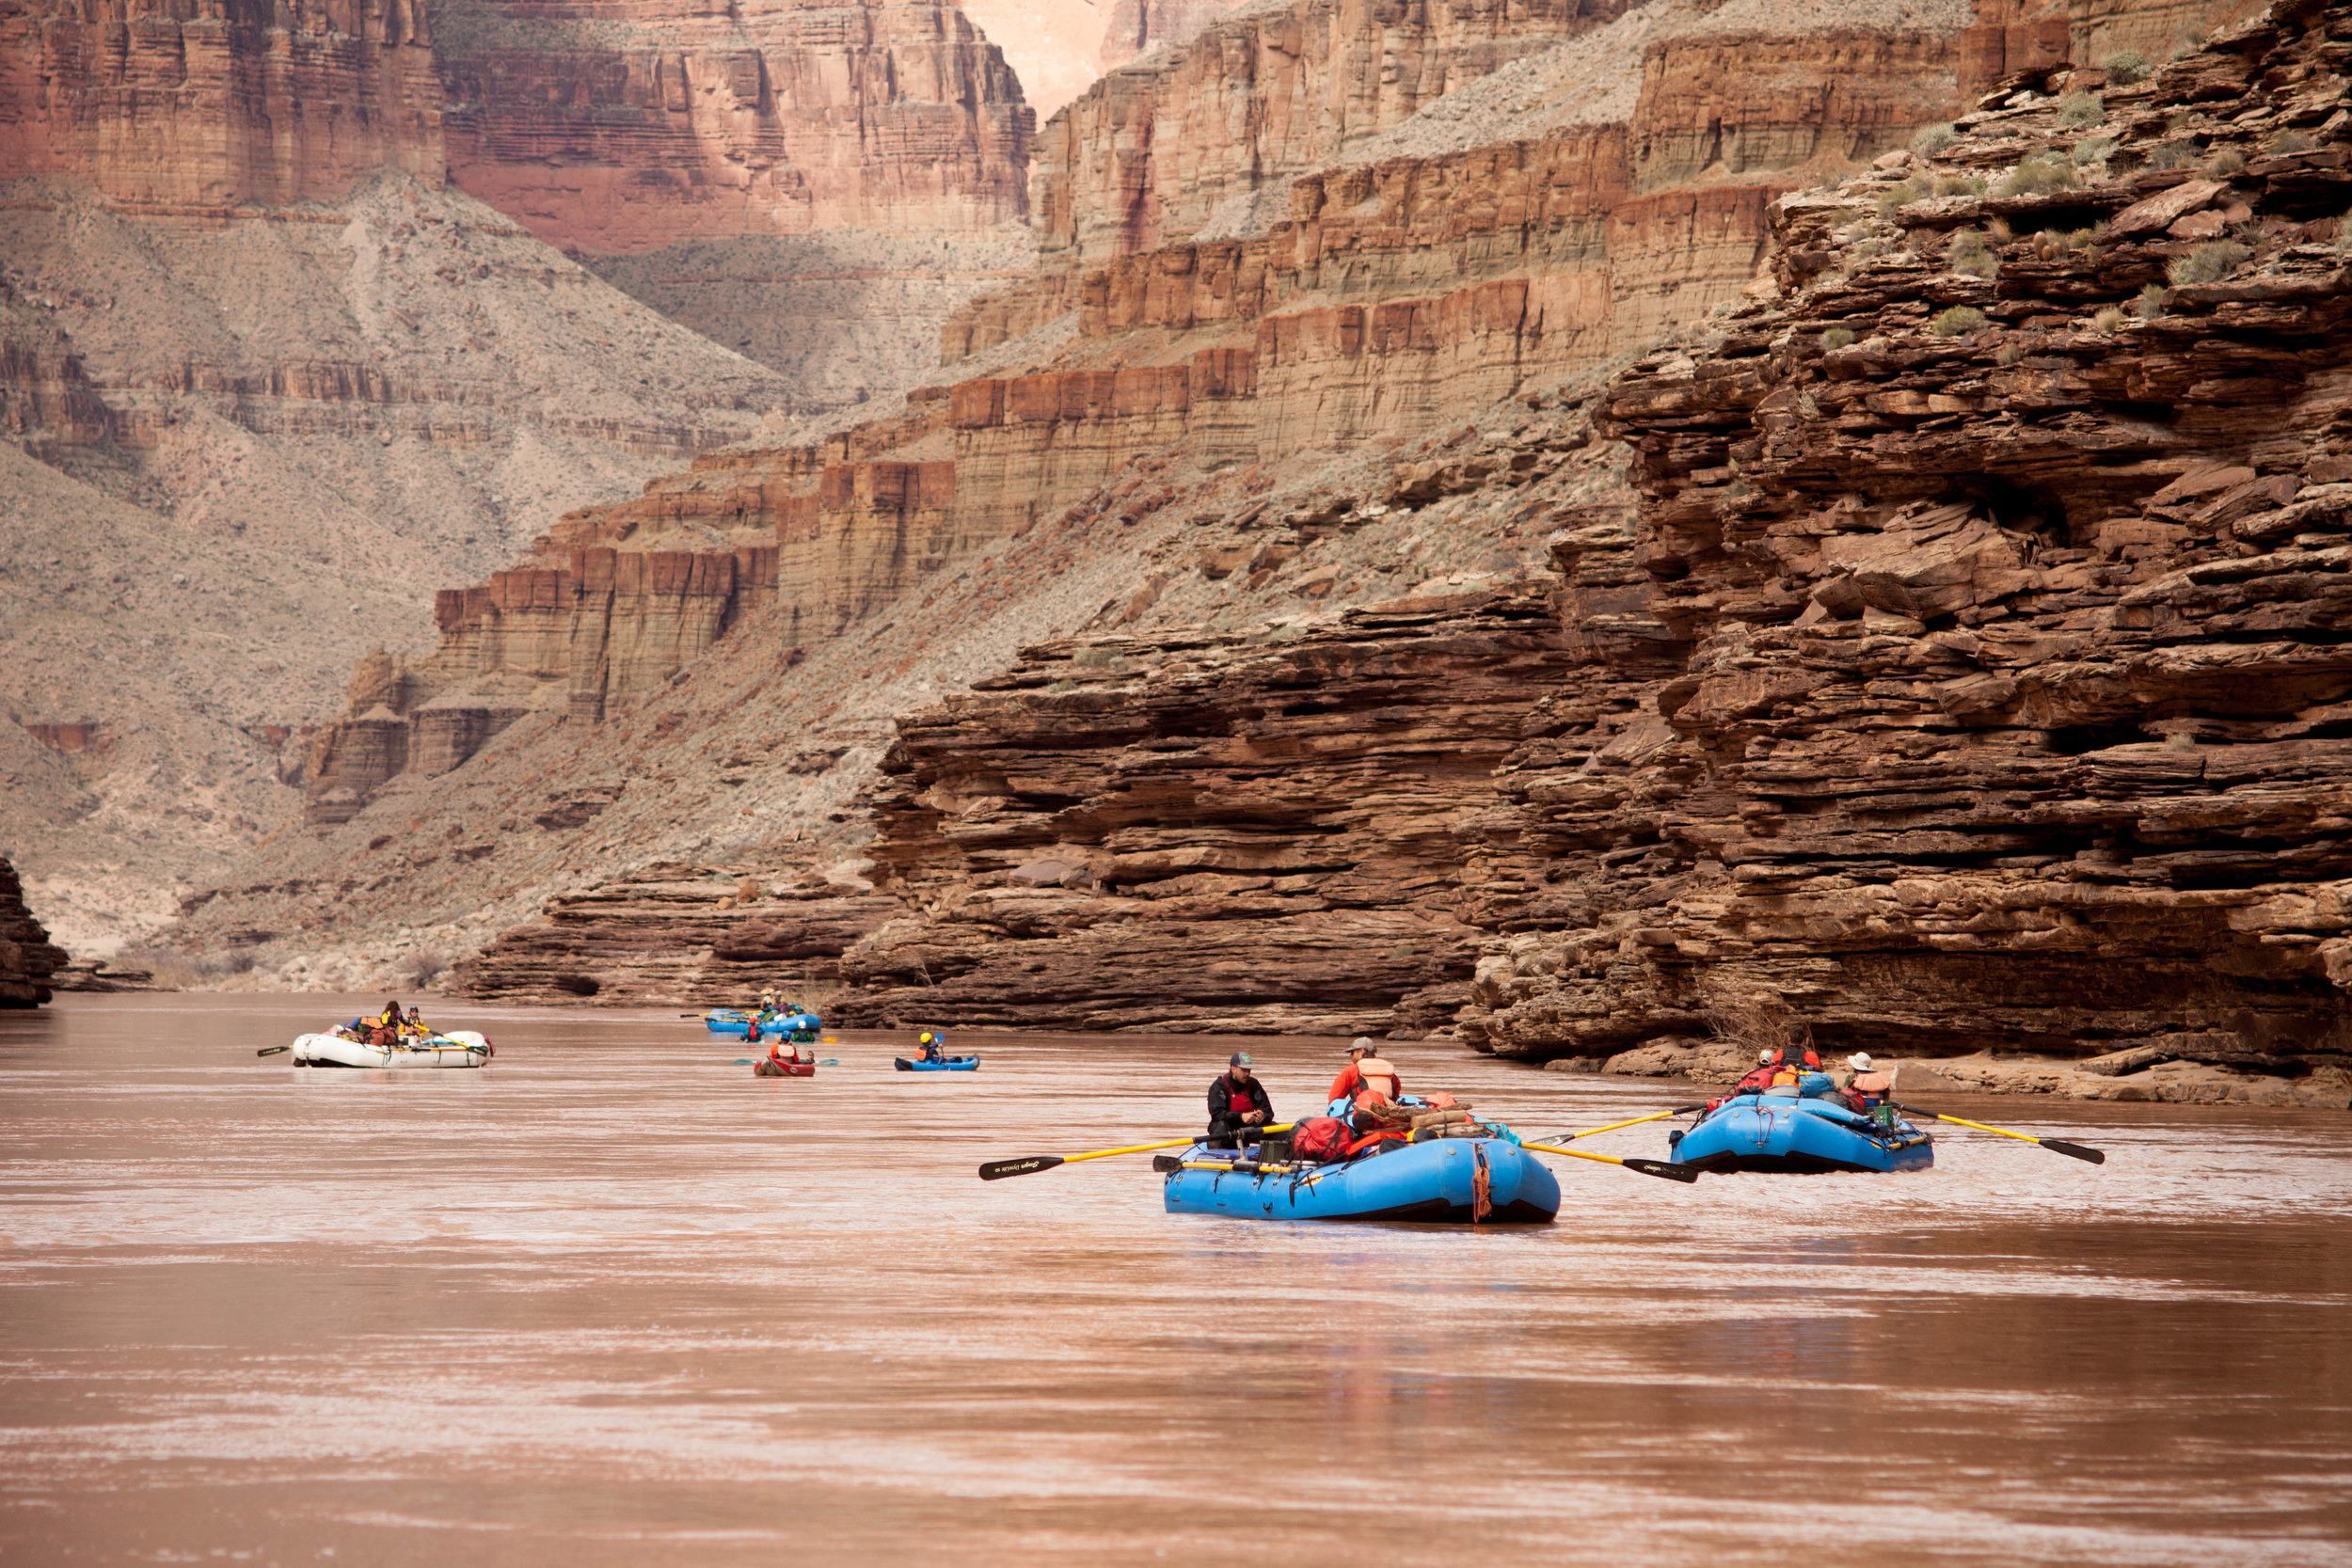 Drifting through Conquistador Aisle - one of the longest straight stretches of river in the Canyon